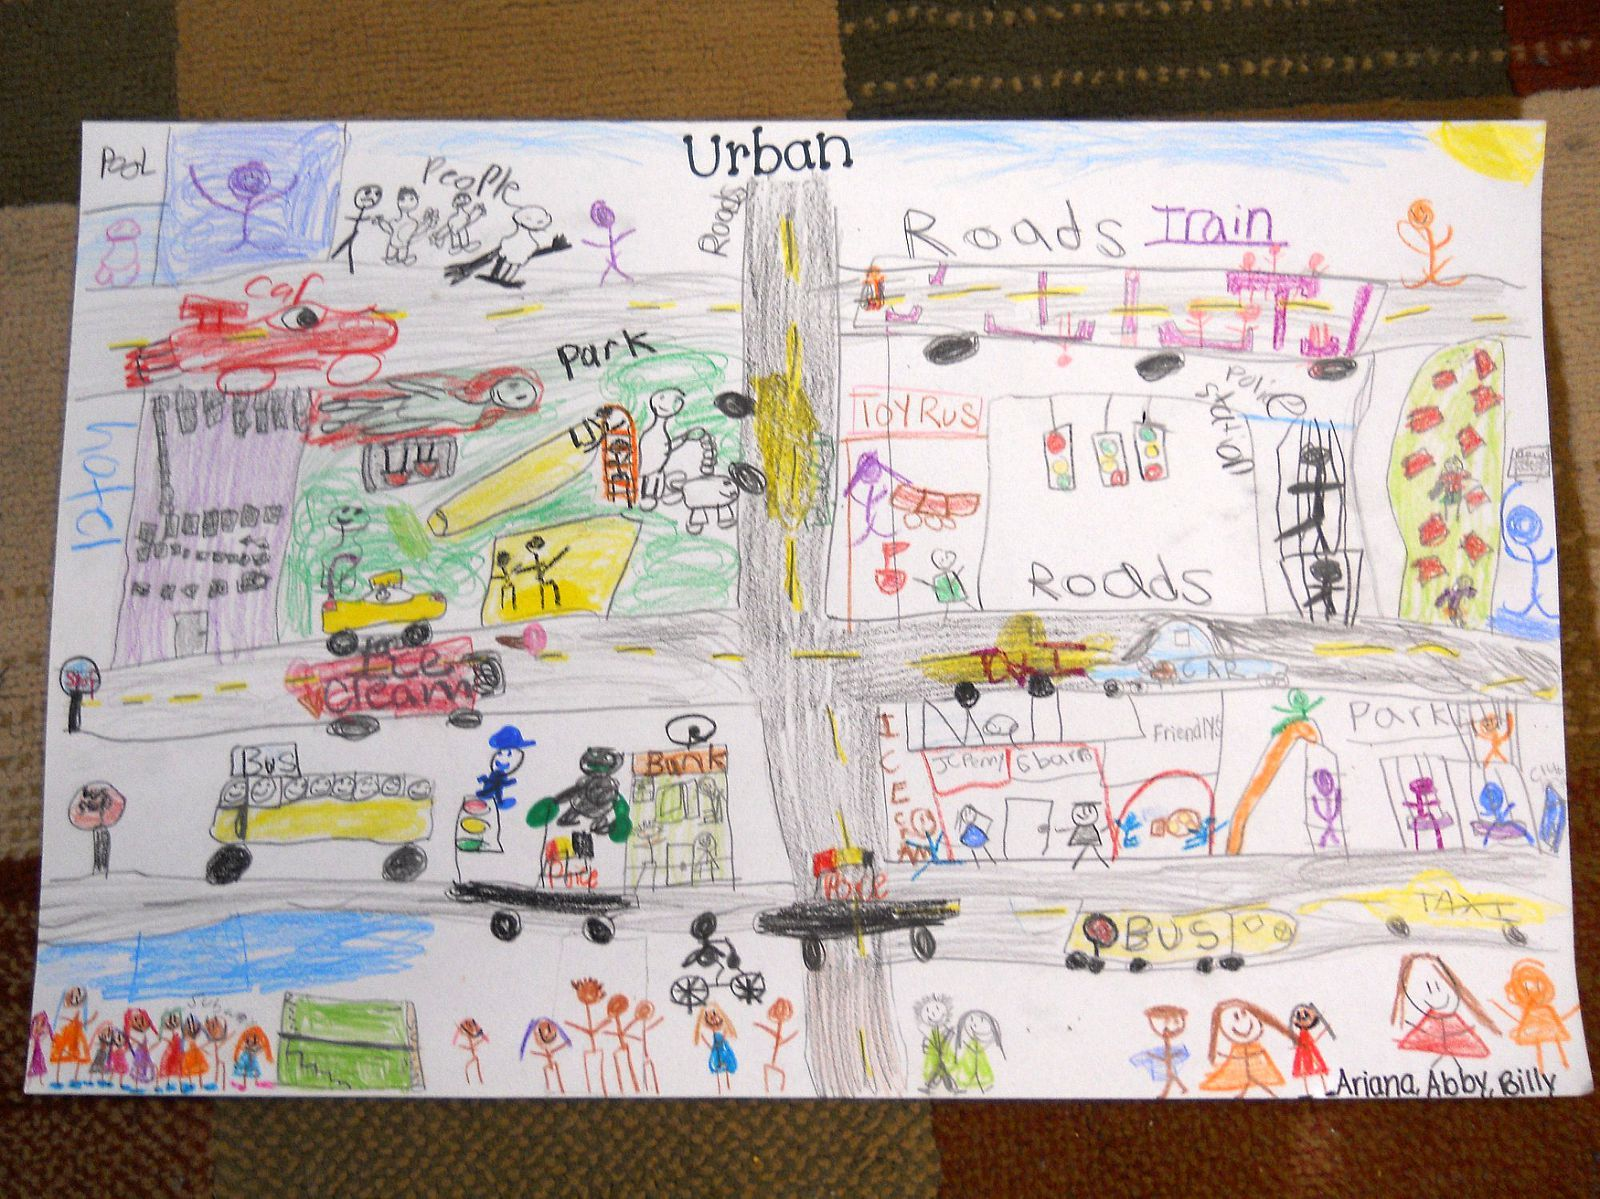 Student Group Hands On Project Of Creating An Urban Community Poster